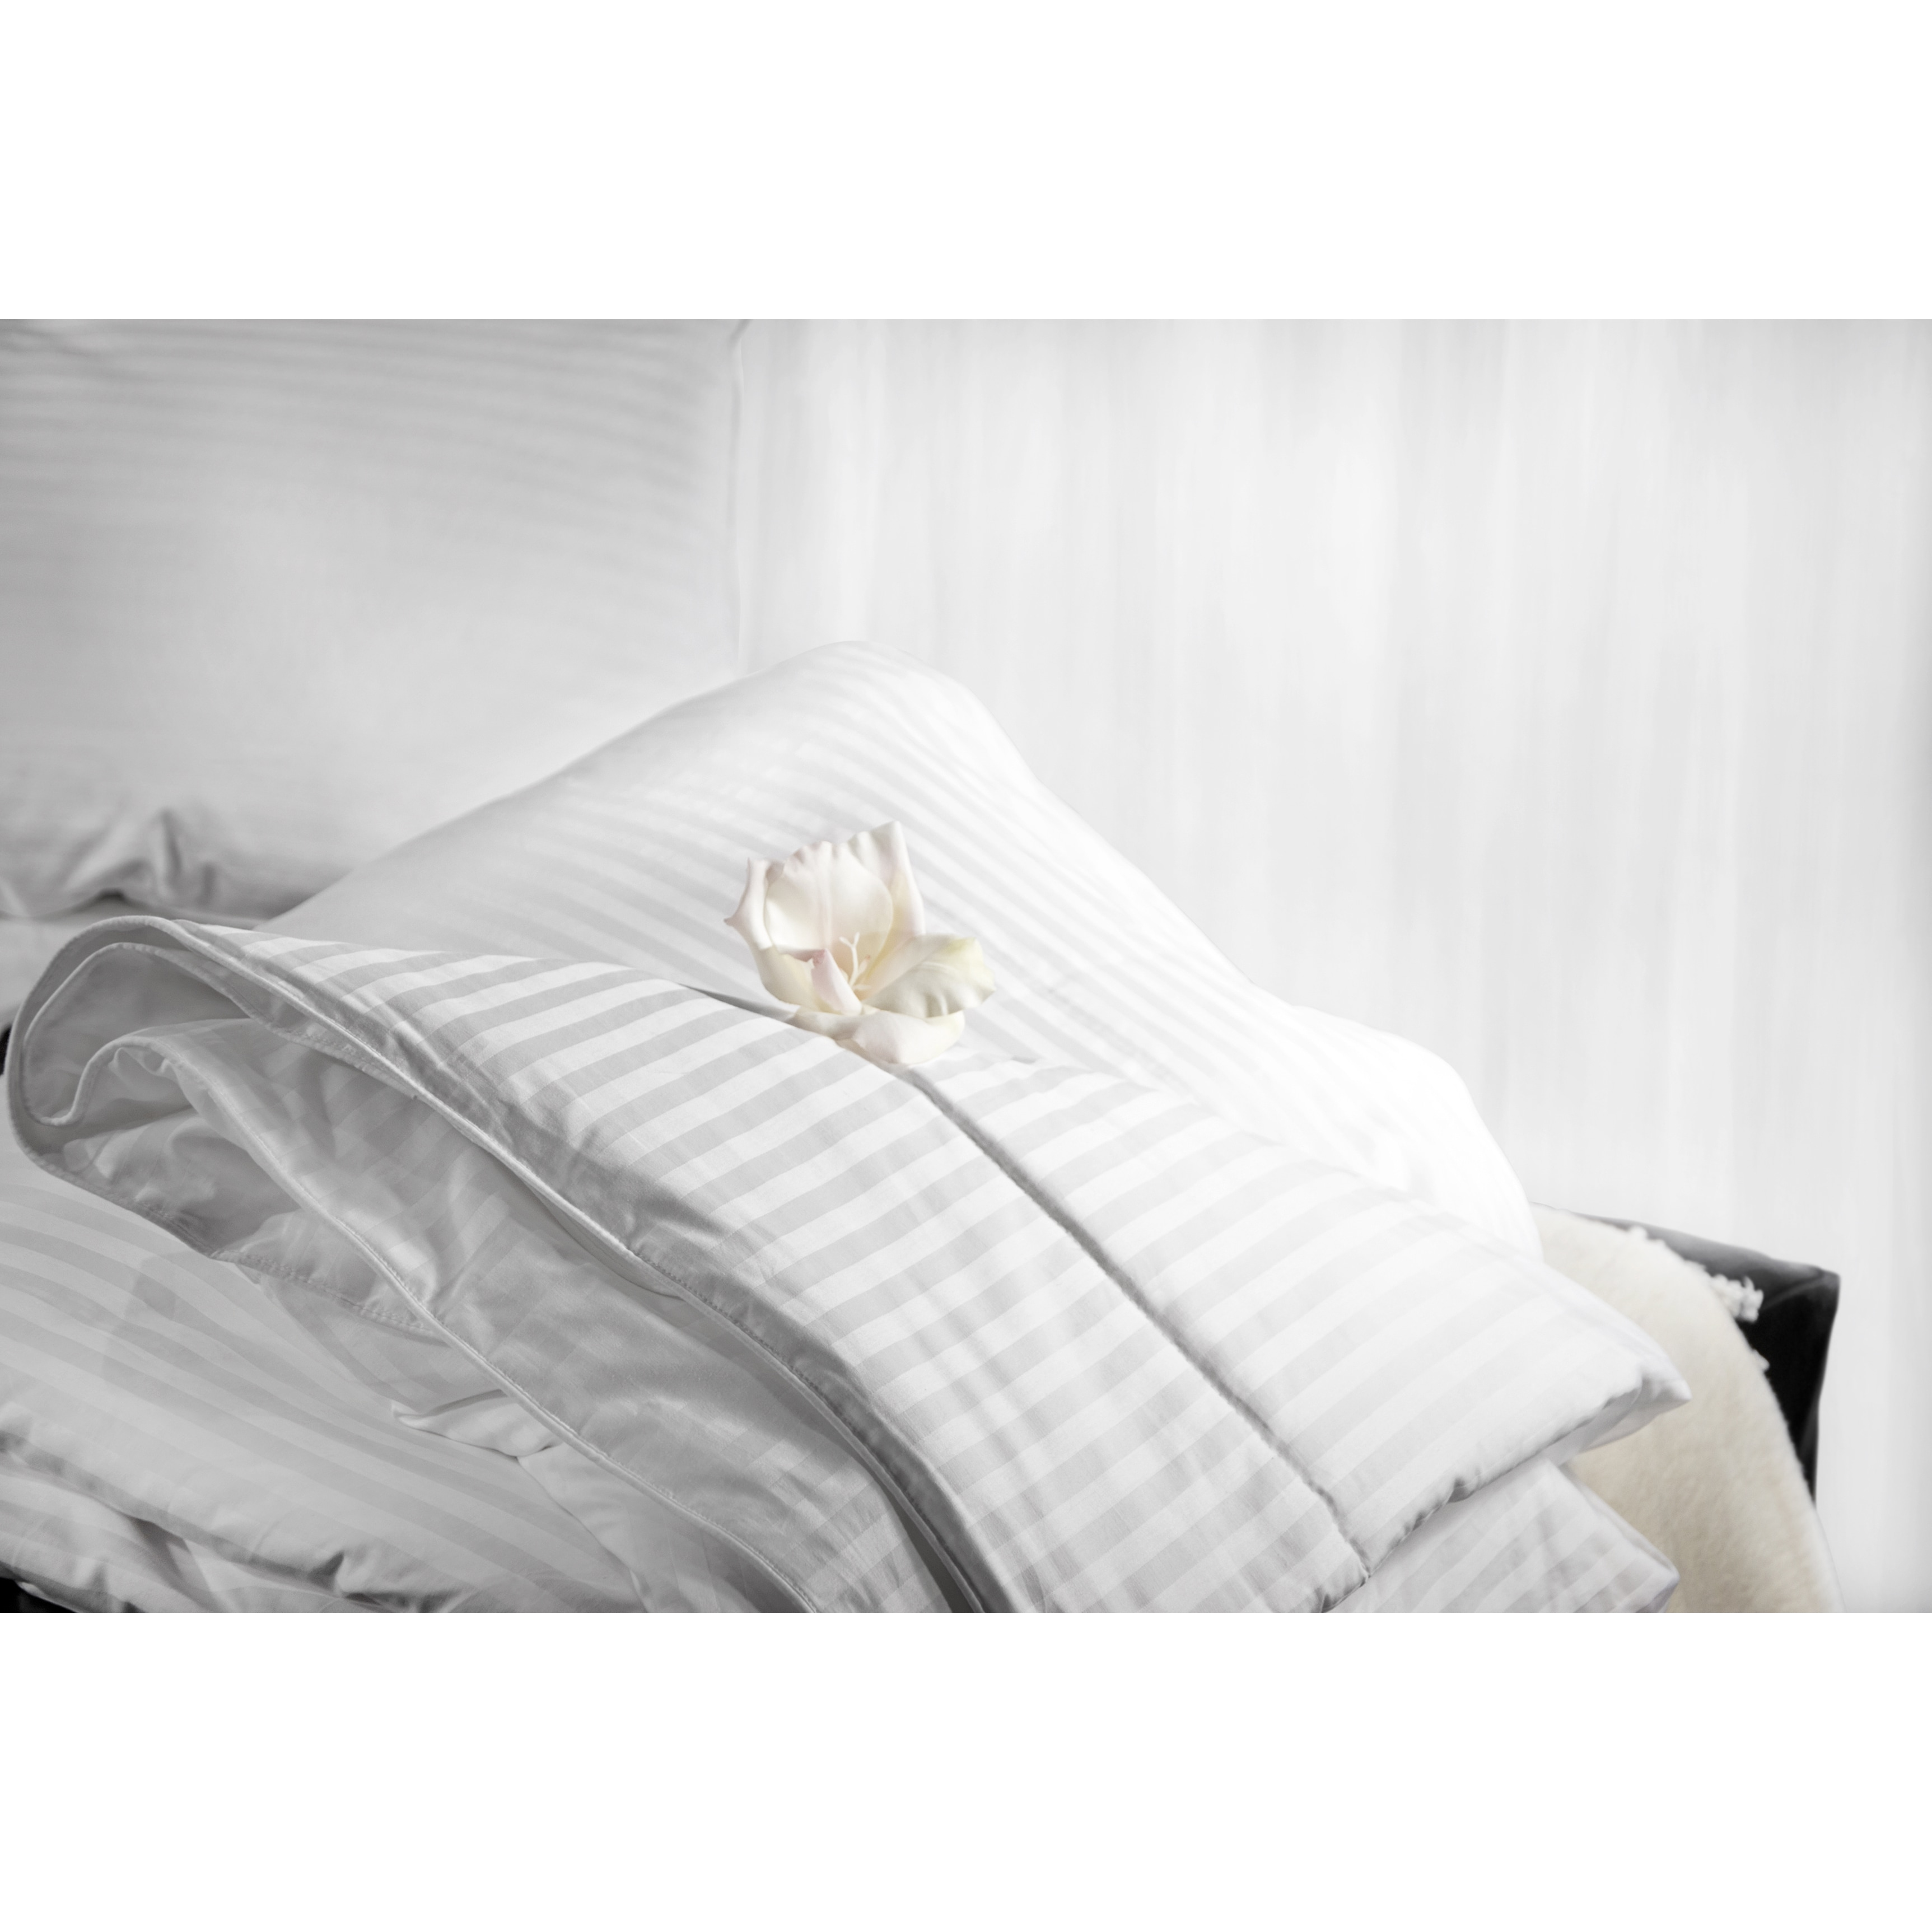 am comforter photo products copy apr silk mulberry cozy earth